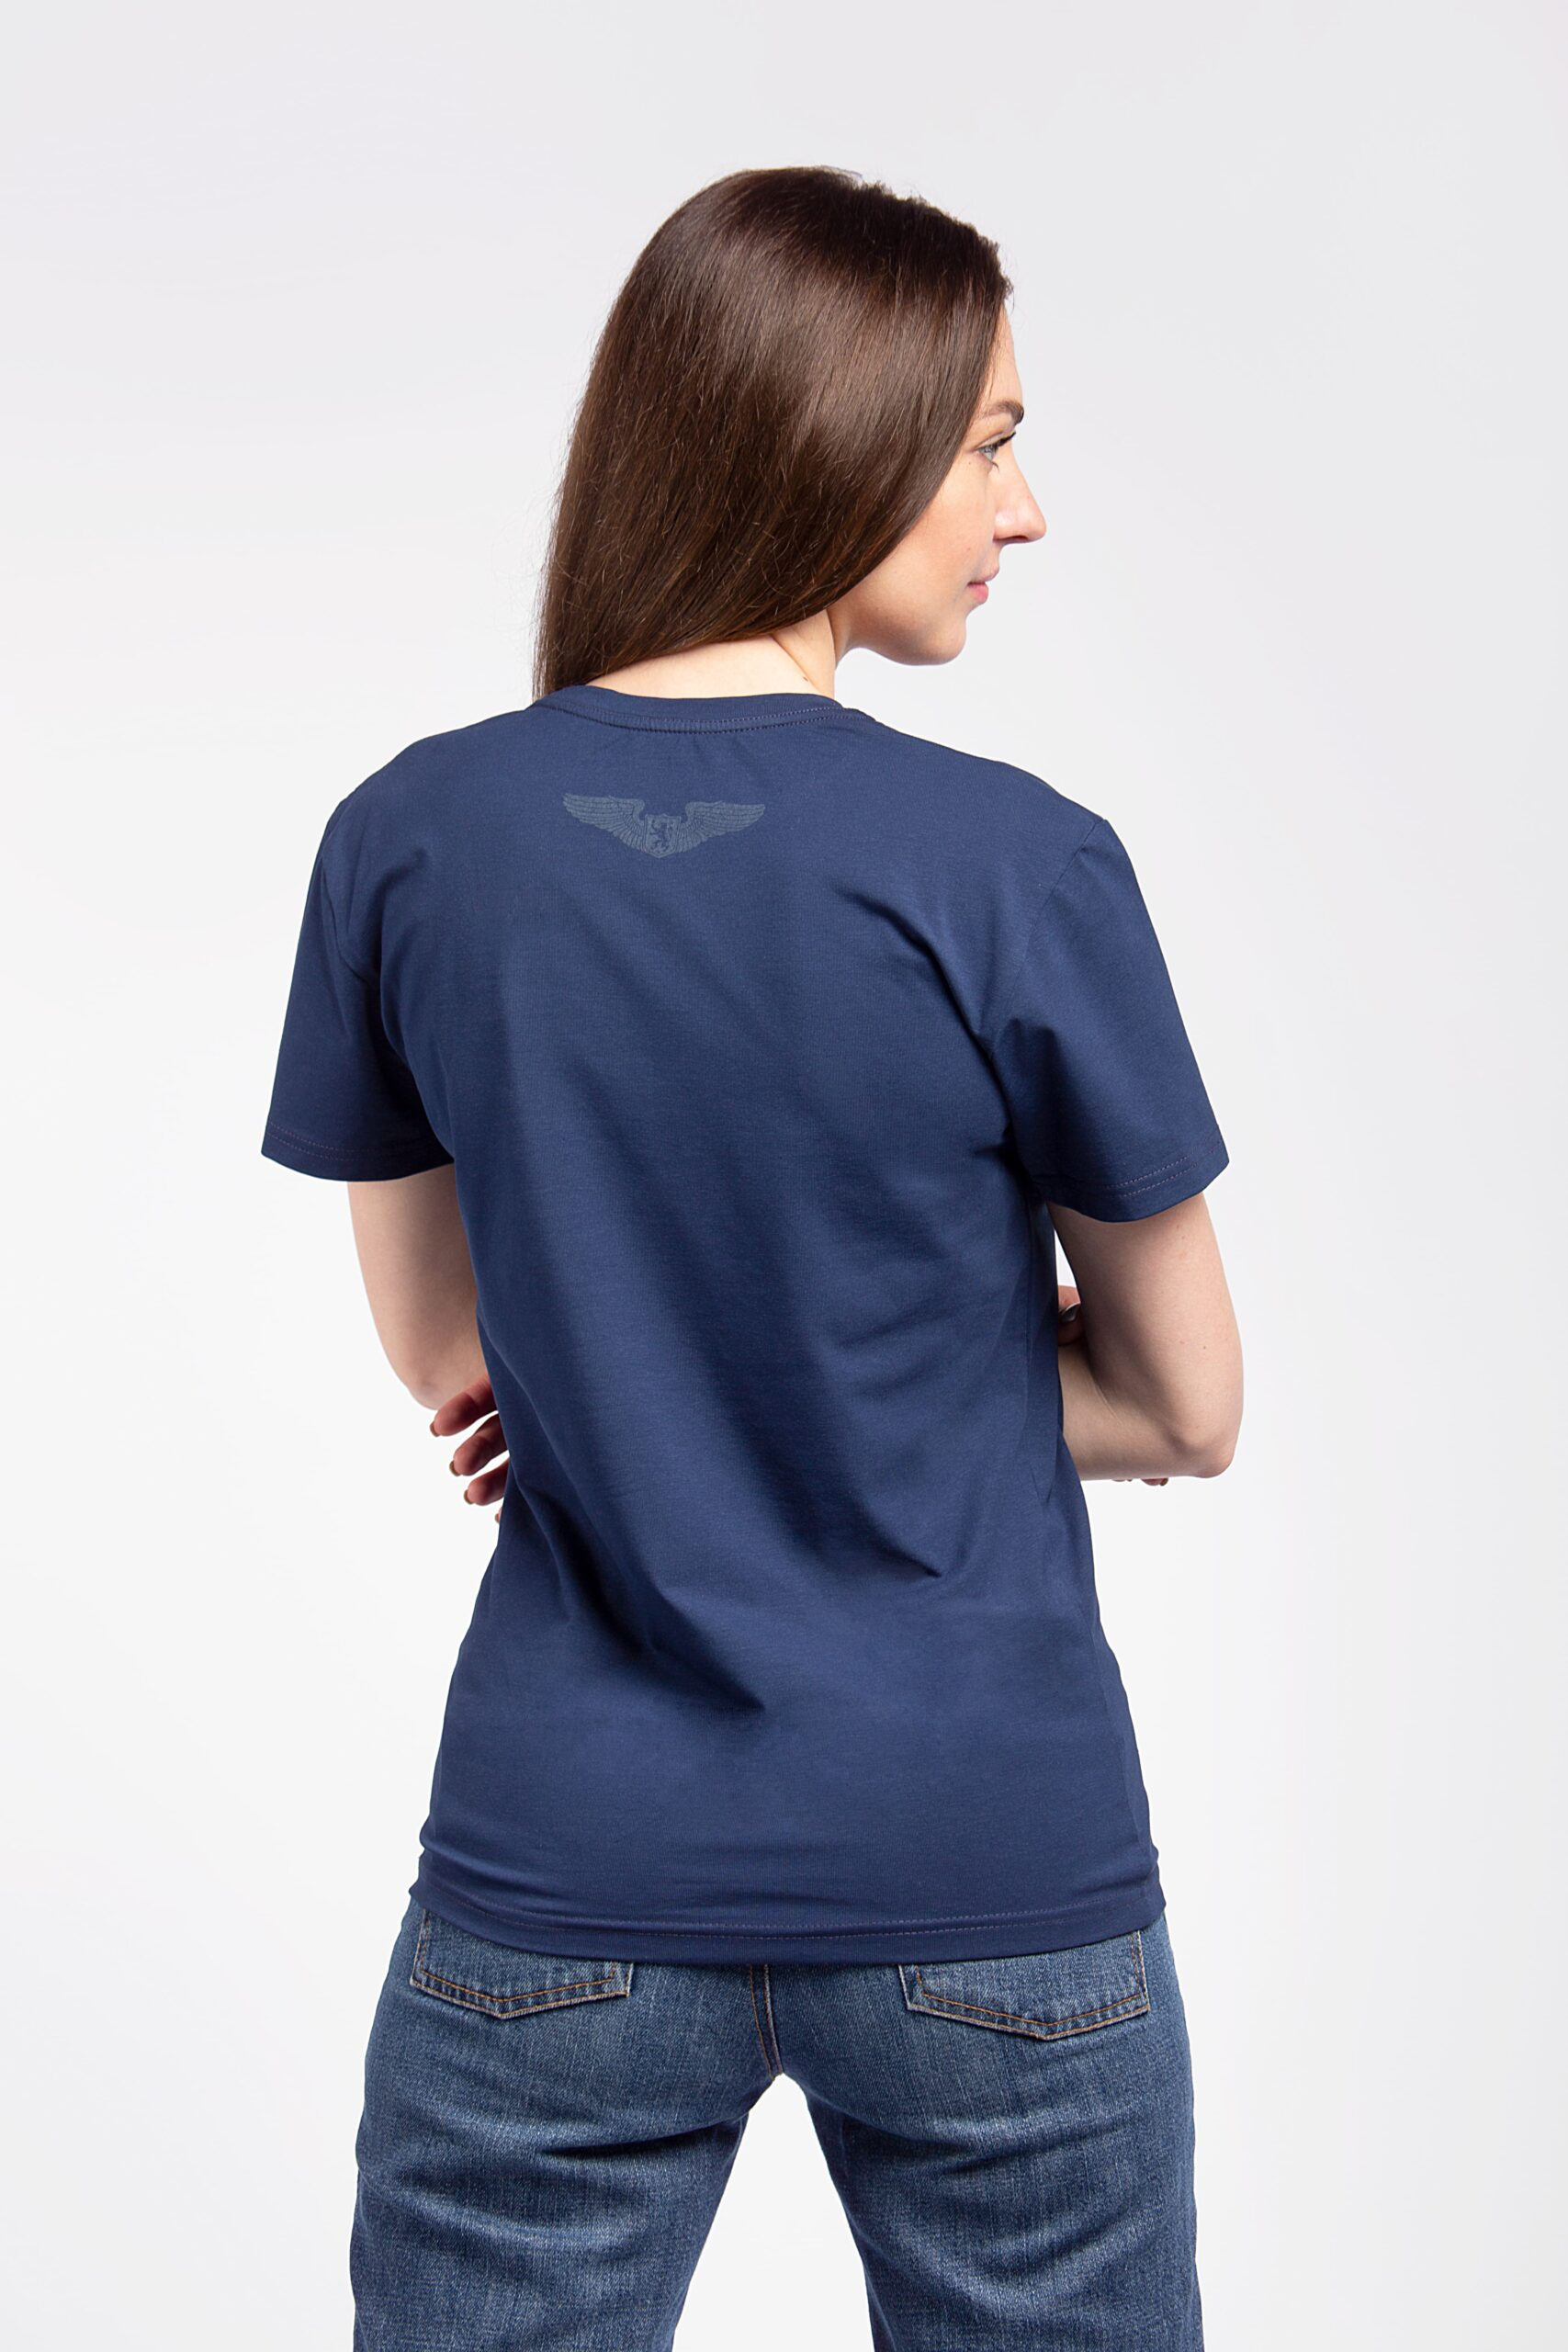 Women's T-Shirt An. The Greatest Hits. Color navy blue.  Material: 95% cotton, 5% spandex.